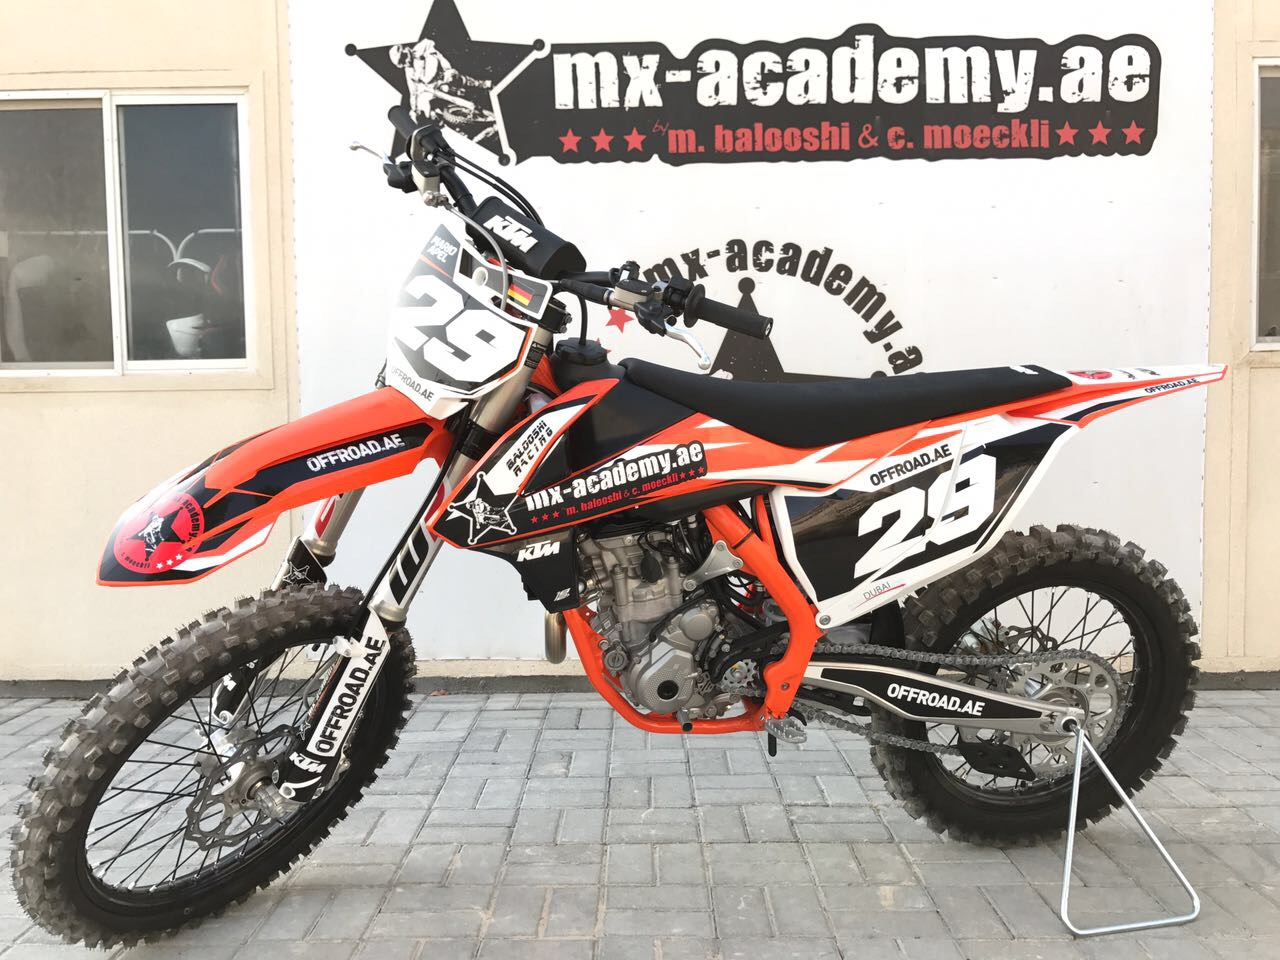 Ktm 250 sx f 2018 with new stickers from 1812